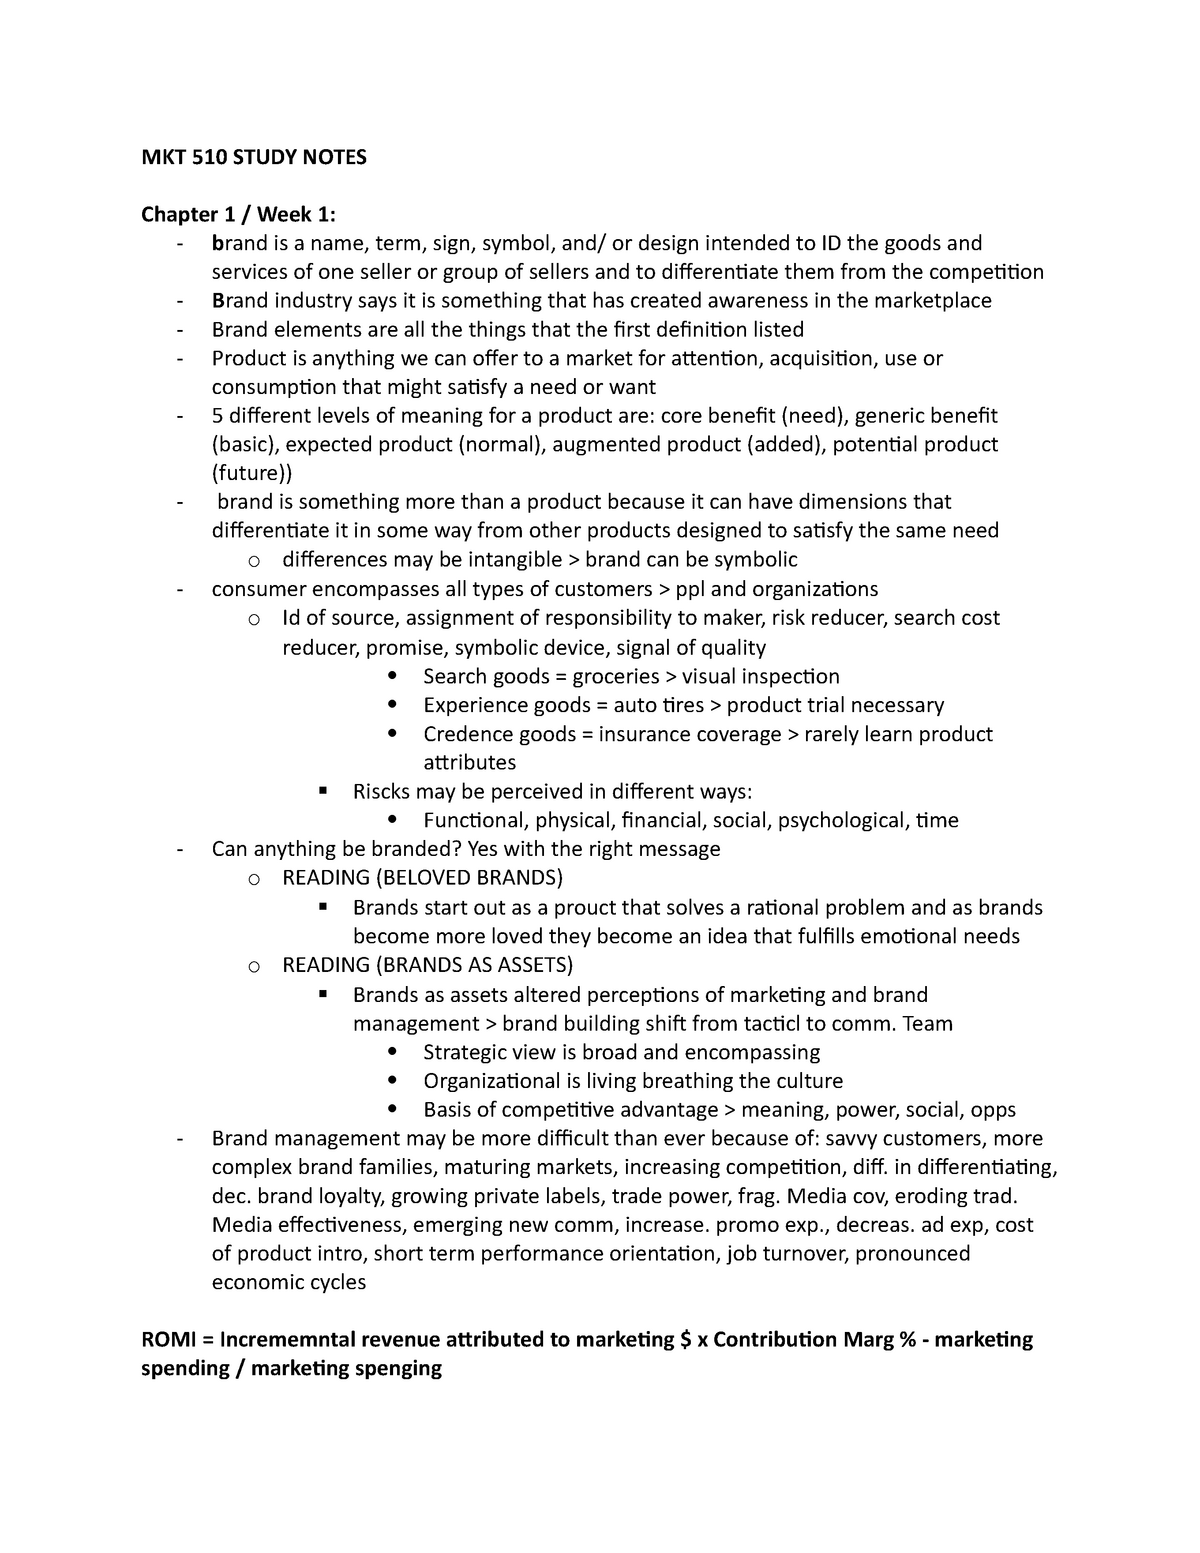 Lecture notes - pre midterm study notes - Cmkt 510 - Ryerson